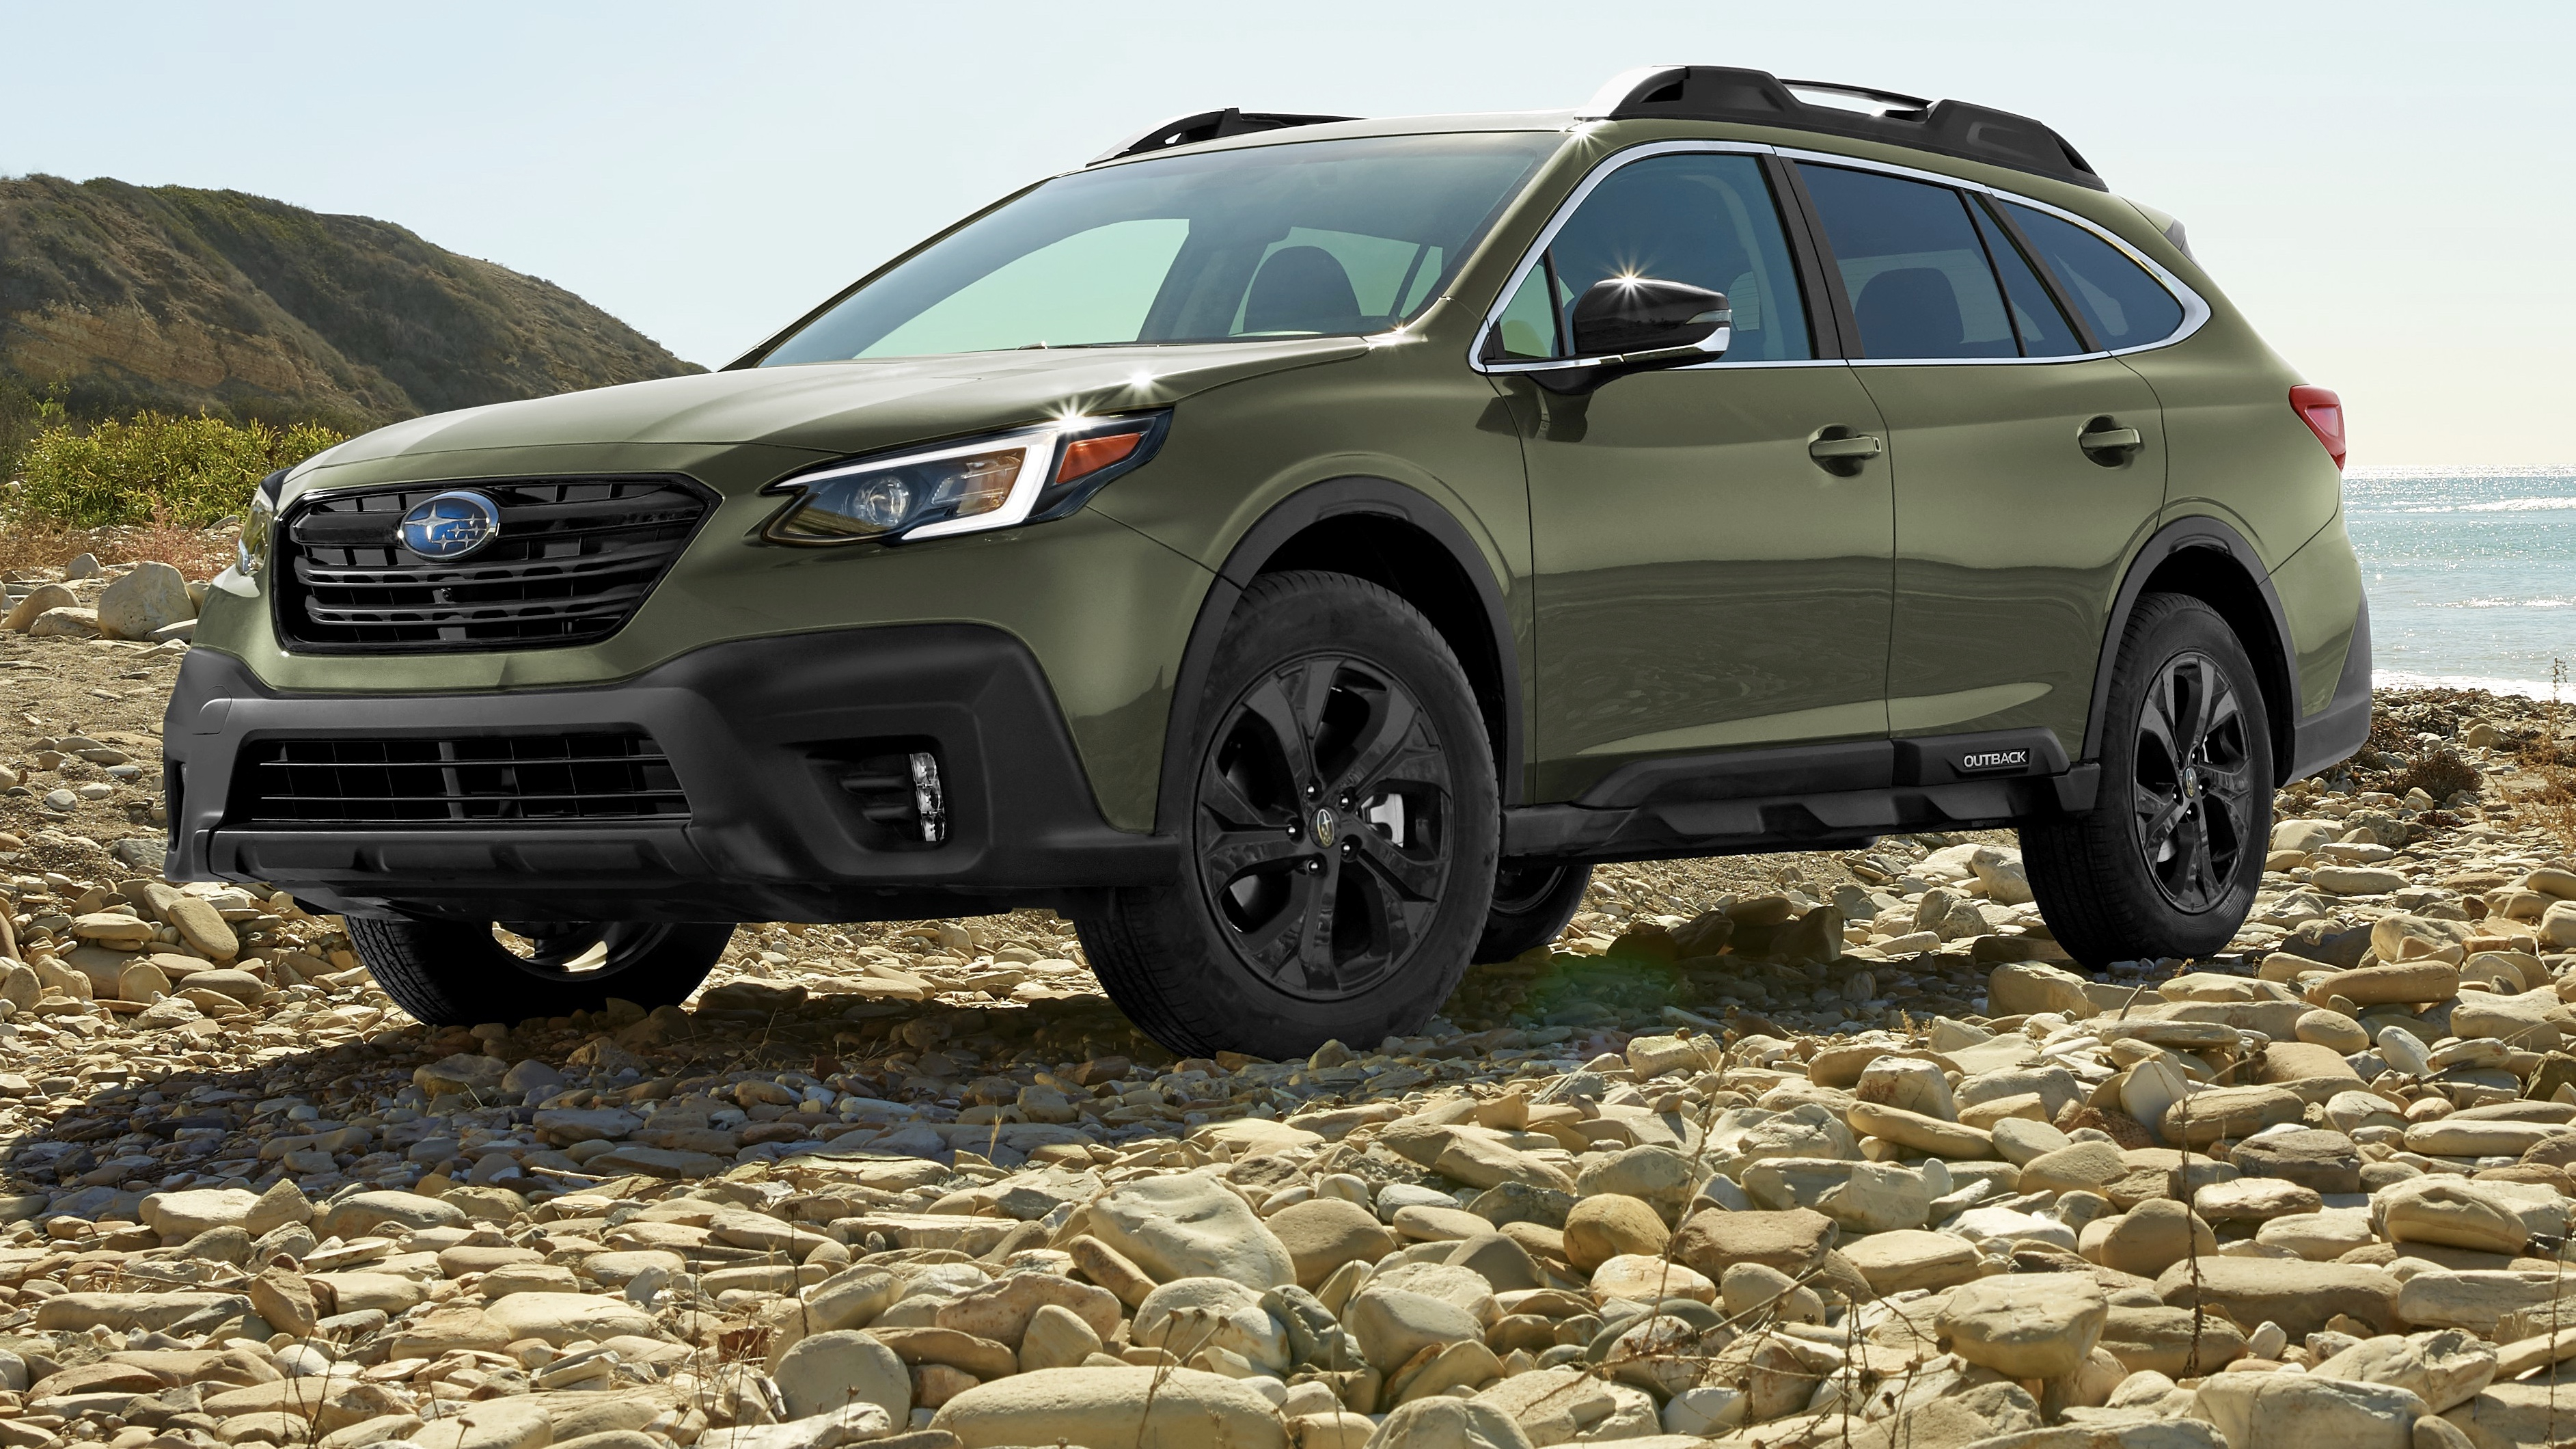 2021 subaru outback towing capacity release date  limited colors